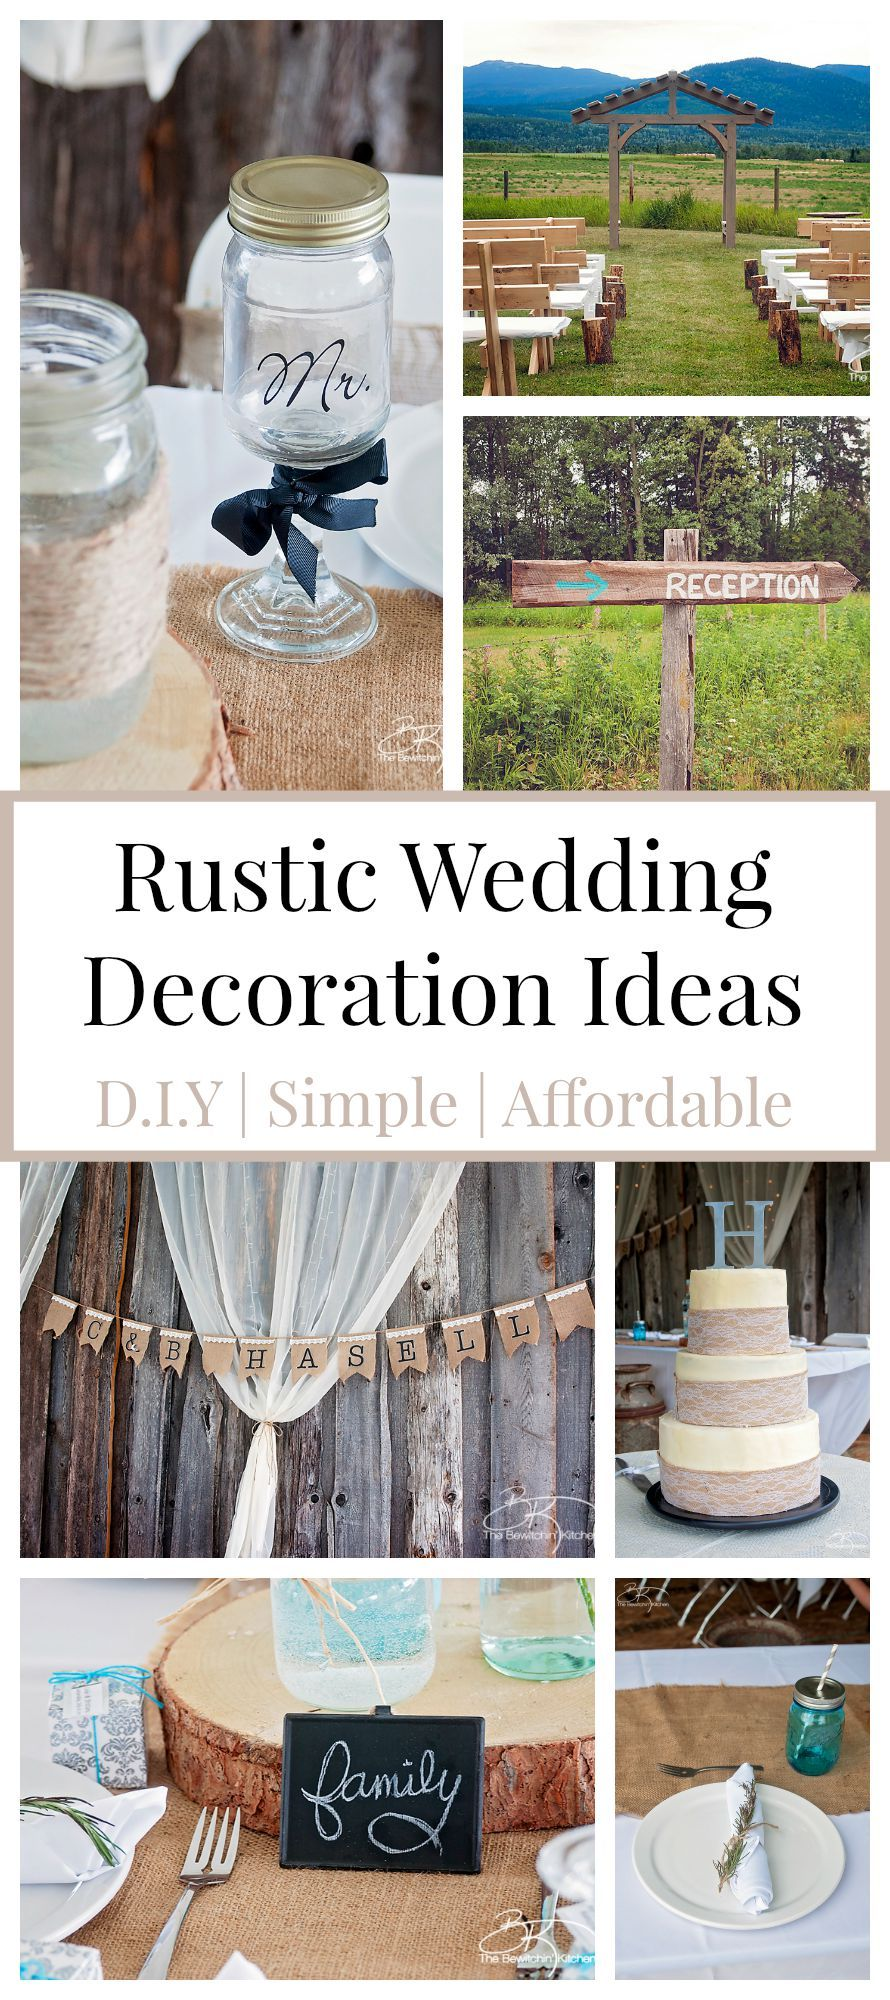 Rustic Wedding Ideas That Are DIY & Affordable Cheap